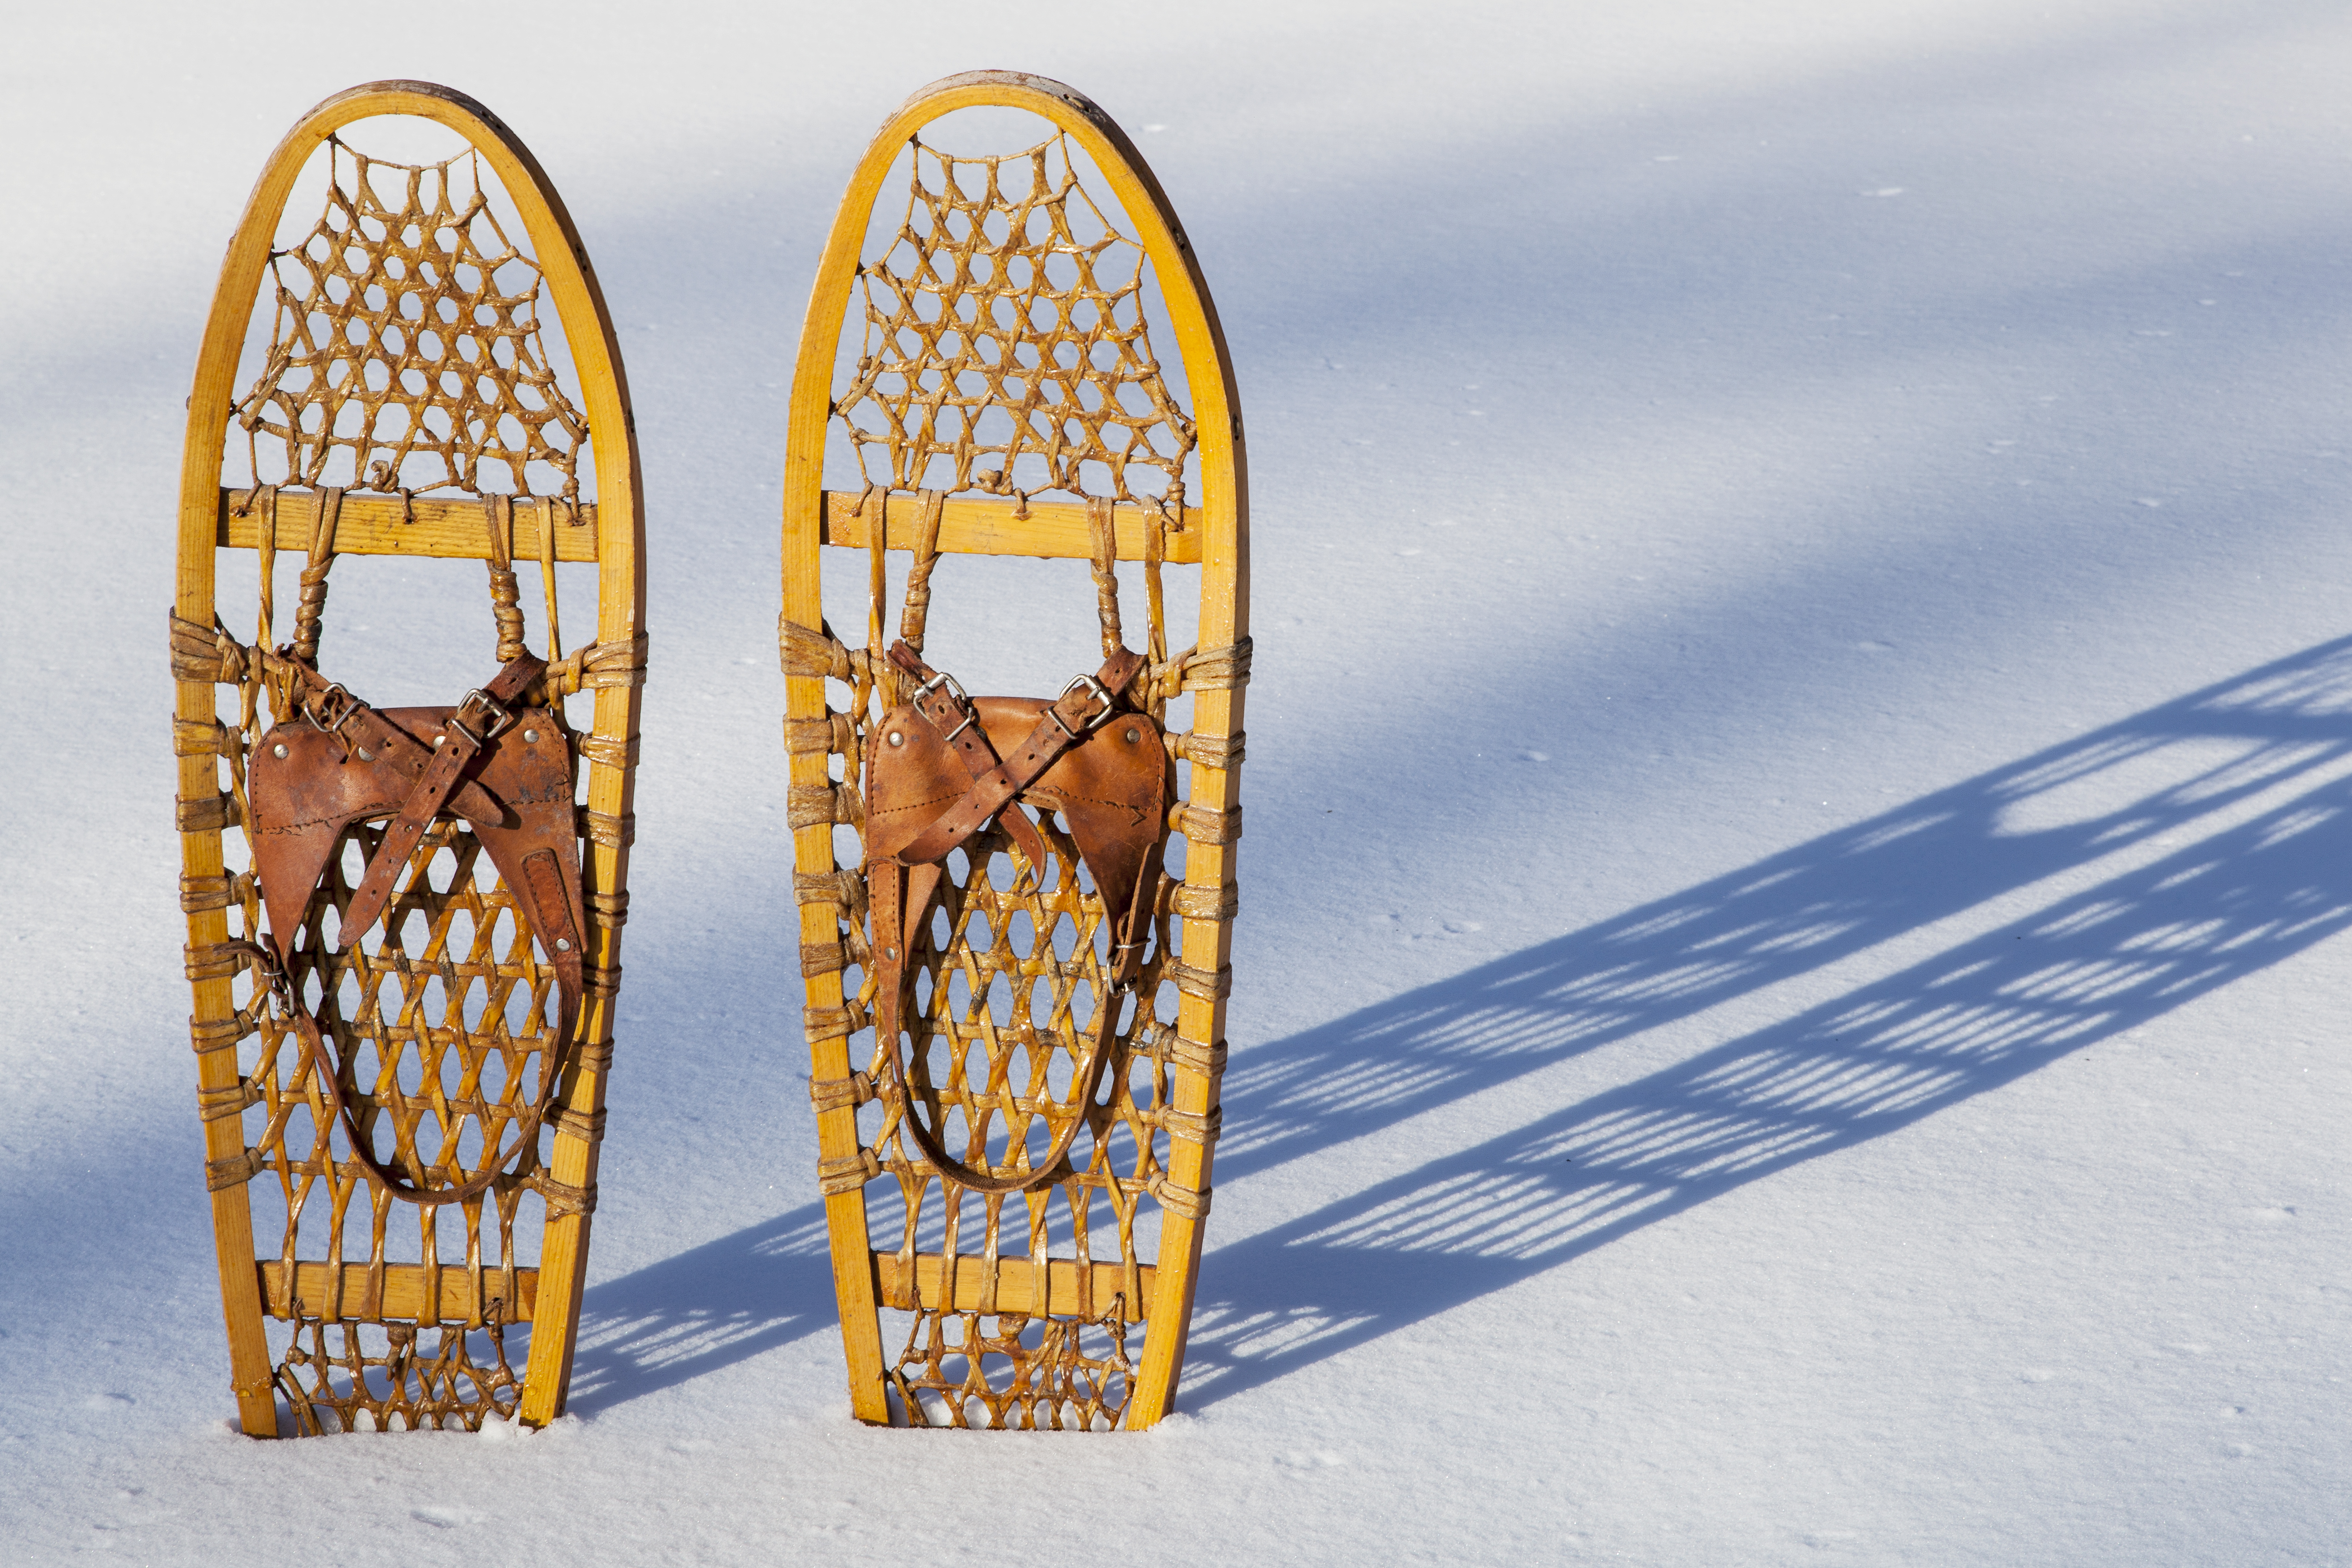 Guided Night Snowshoe Hikes At Scenic Caves Nature Adventures